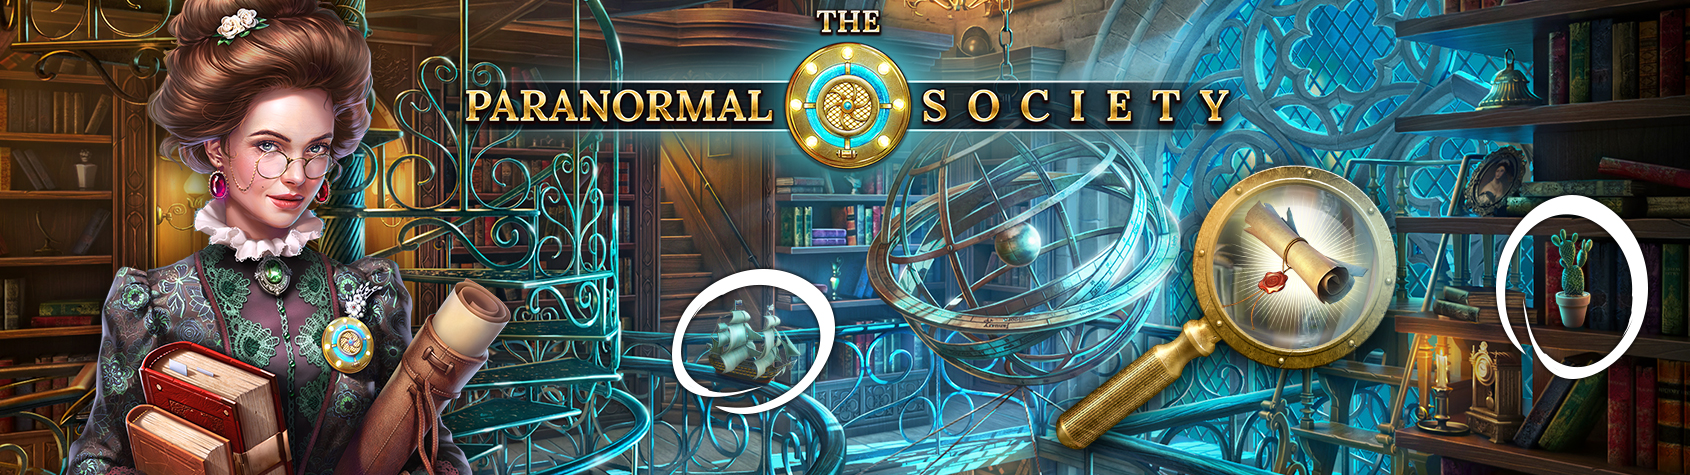 The Paranormal Society®: Hidden Object Adventure